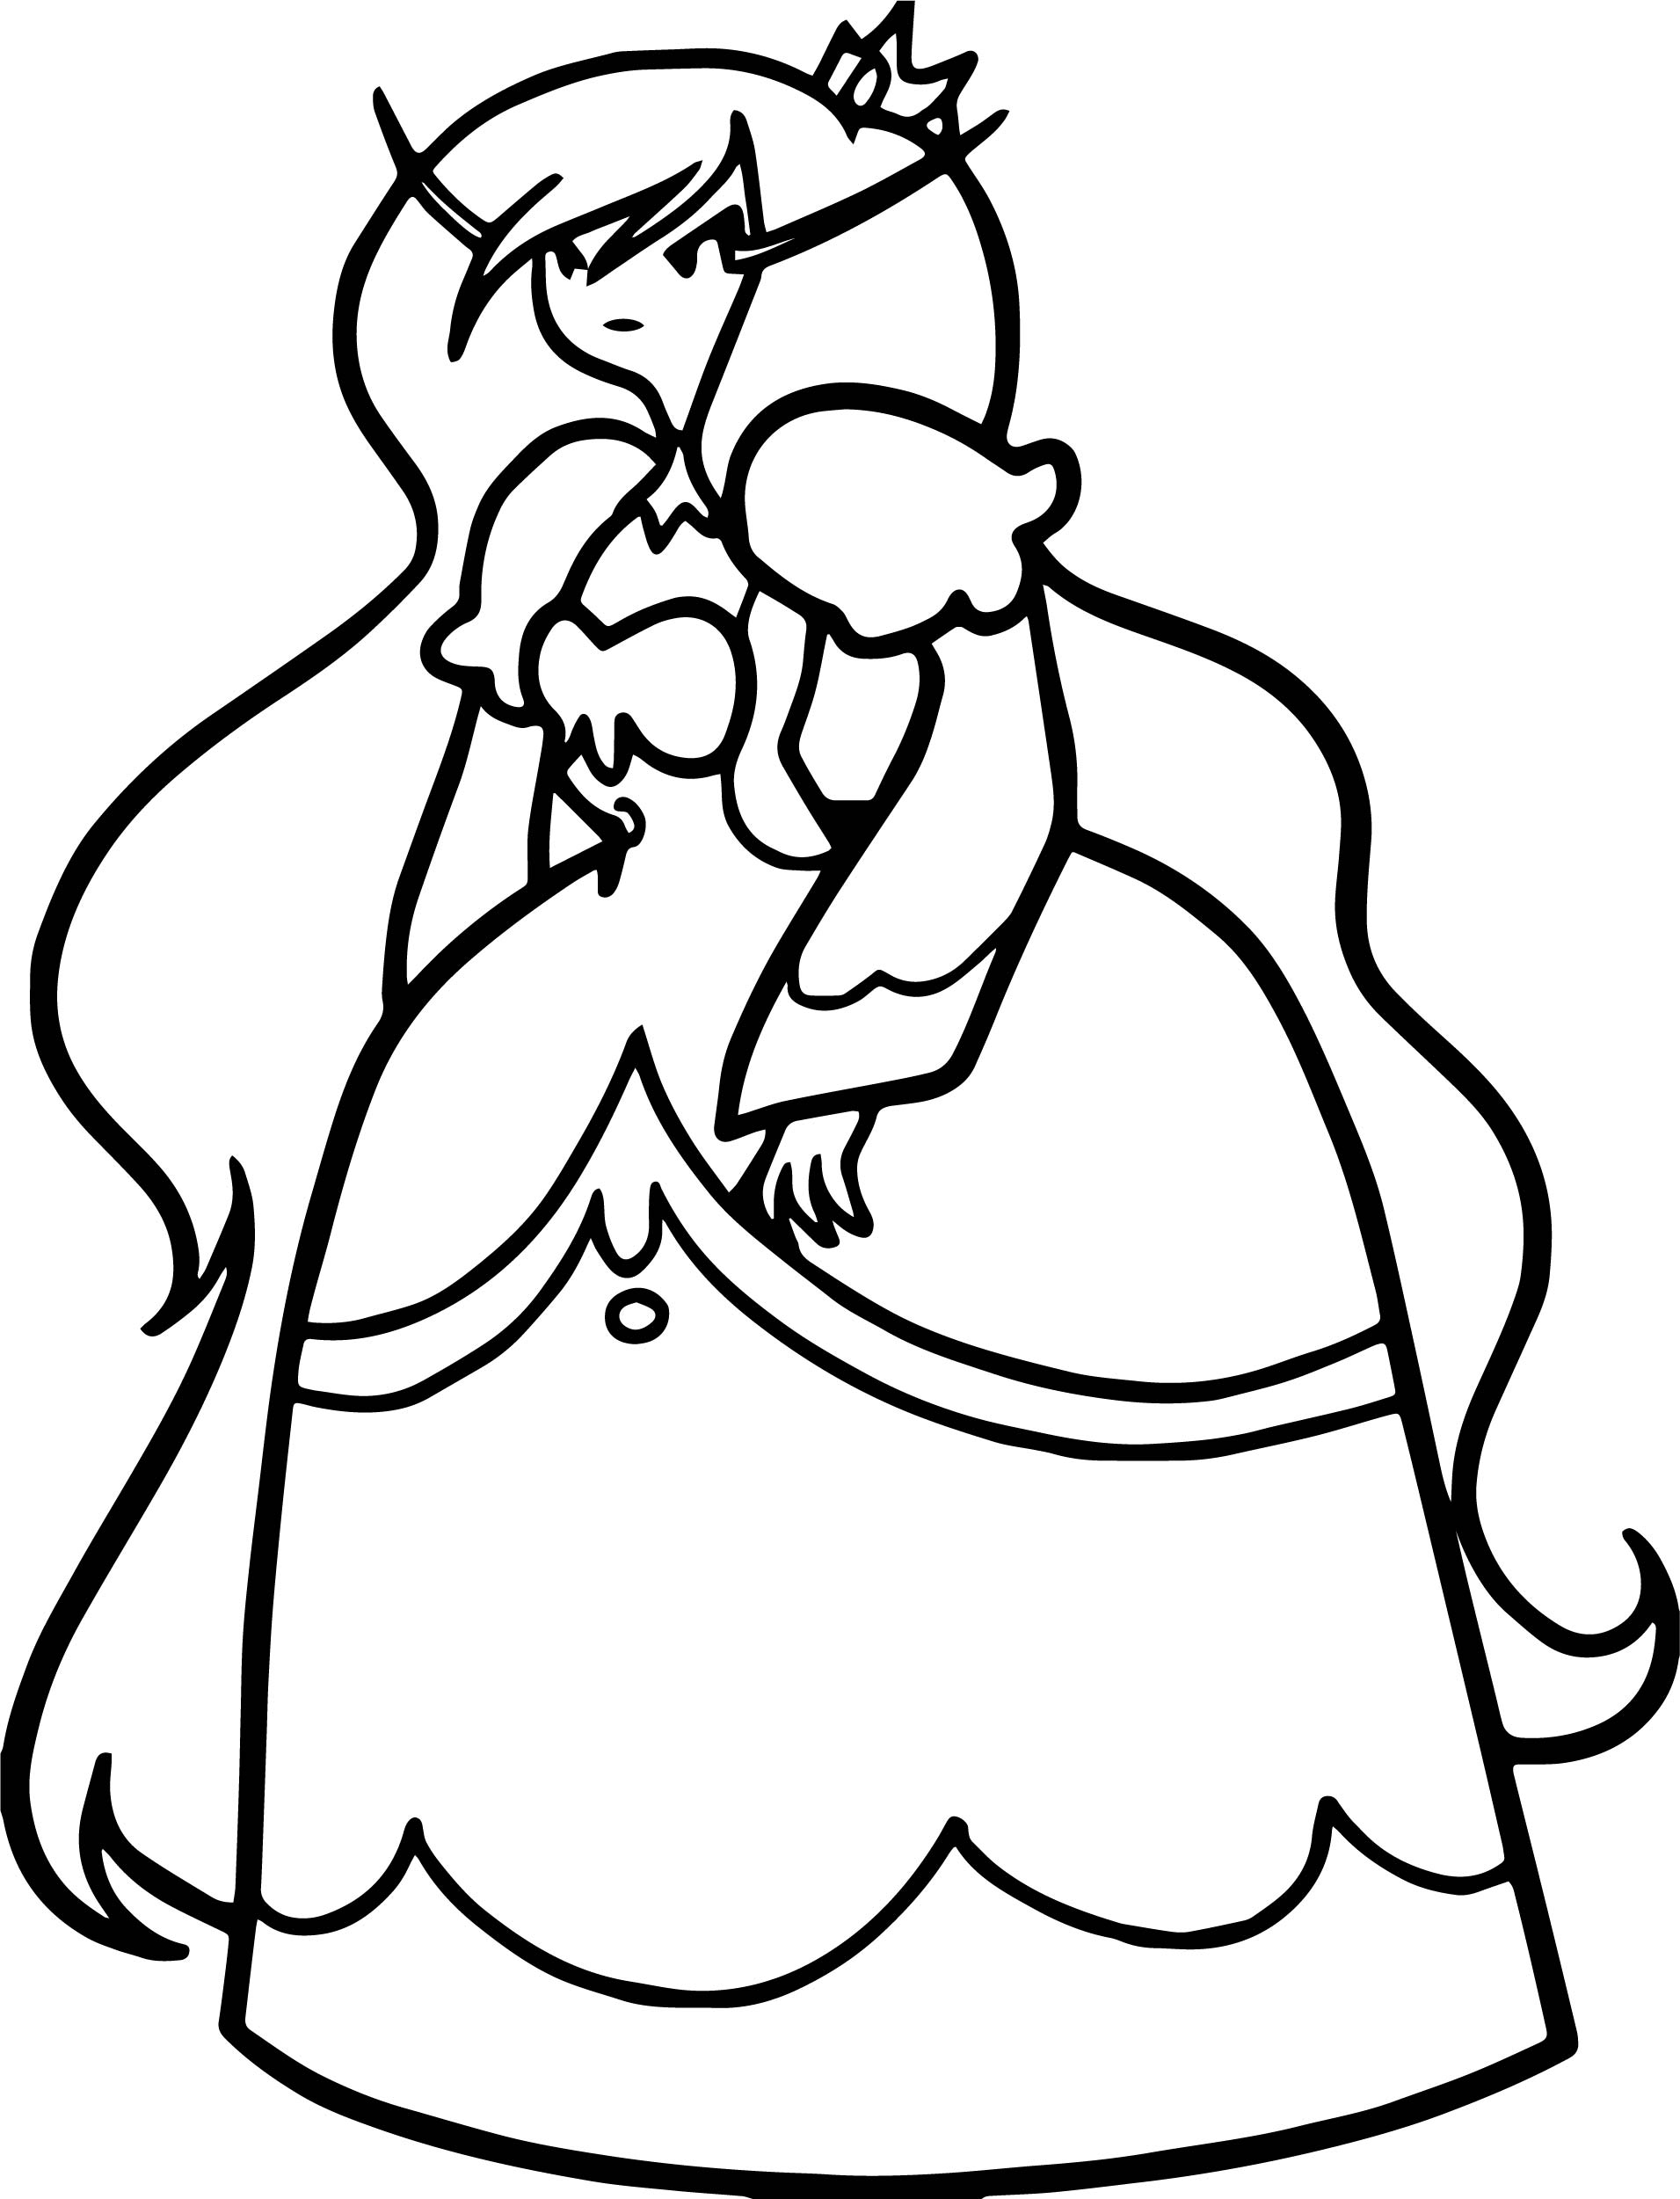 Adventure Time Angry Princess Coloringpage